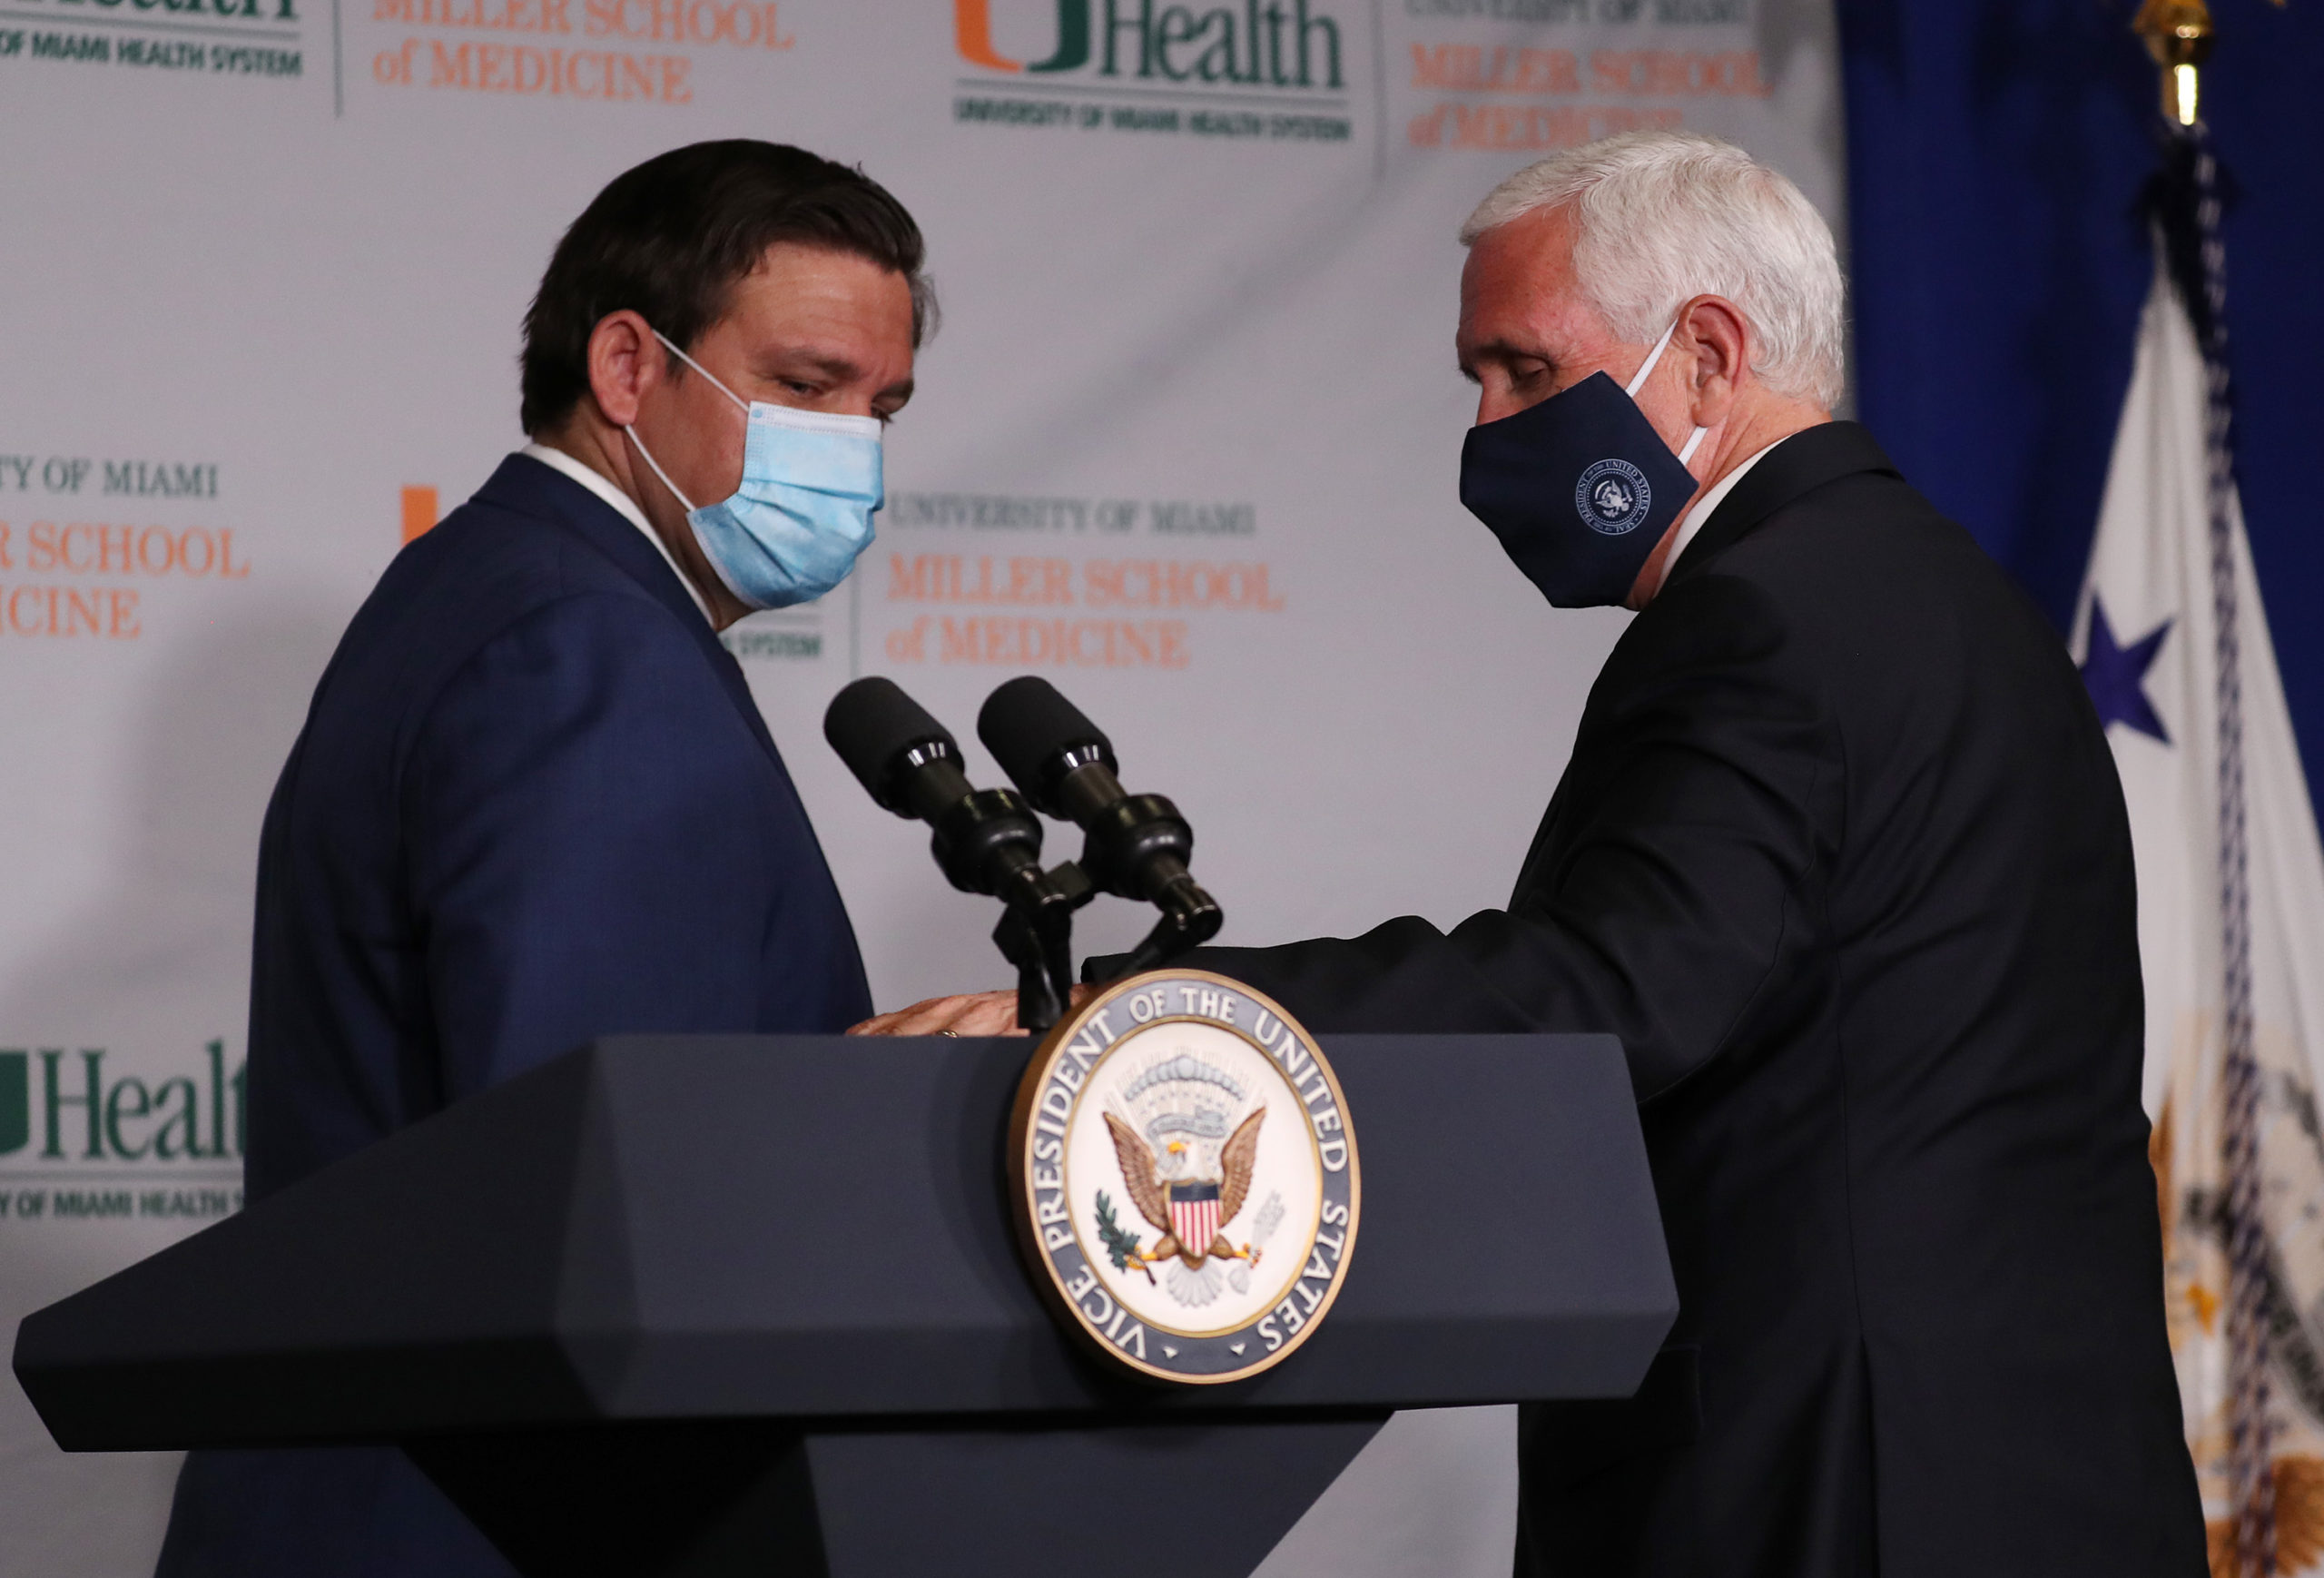 Vice President Mike Pence and Florida Gov. Ron DeSantis leave after participating in a press conference on July 27 in Miami, Florida. (Joe Raedle/Getty Images)